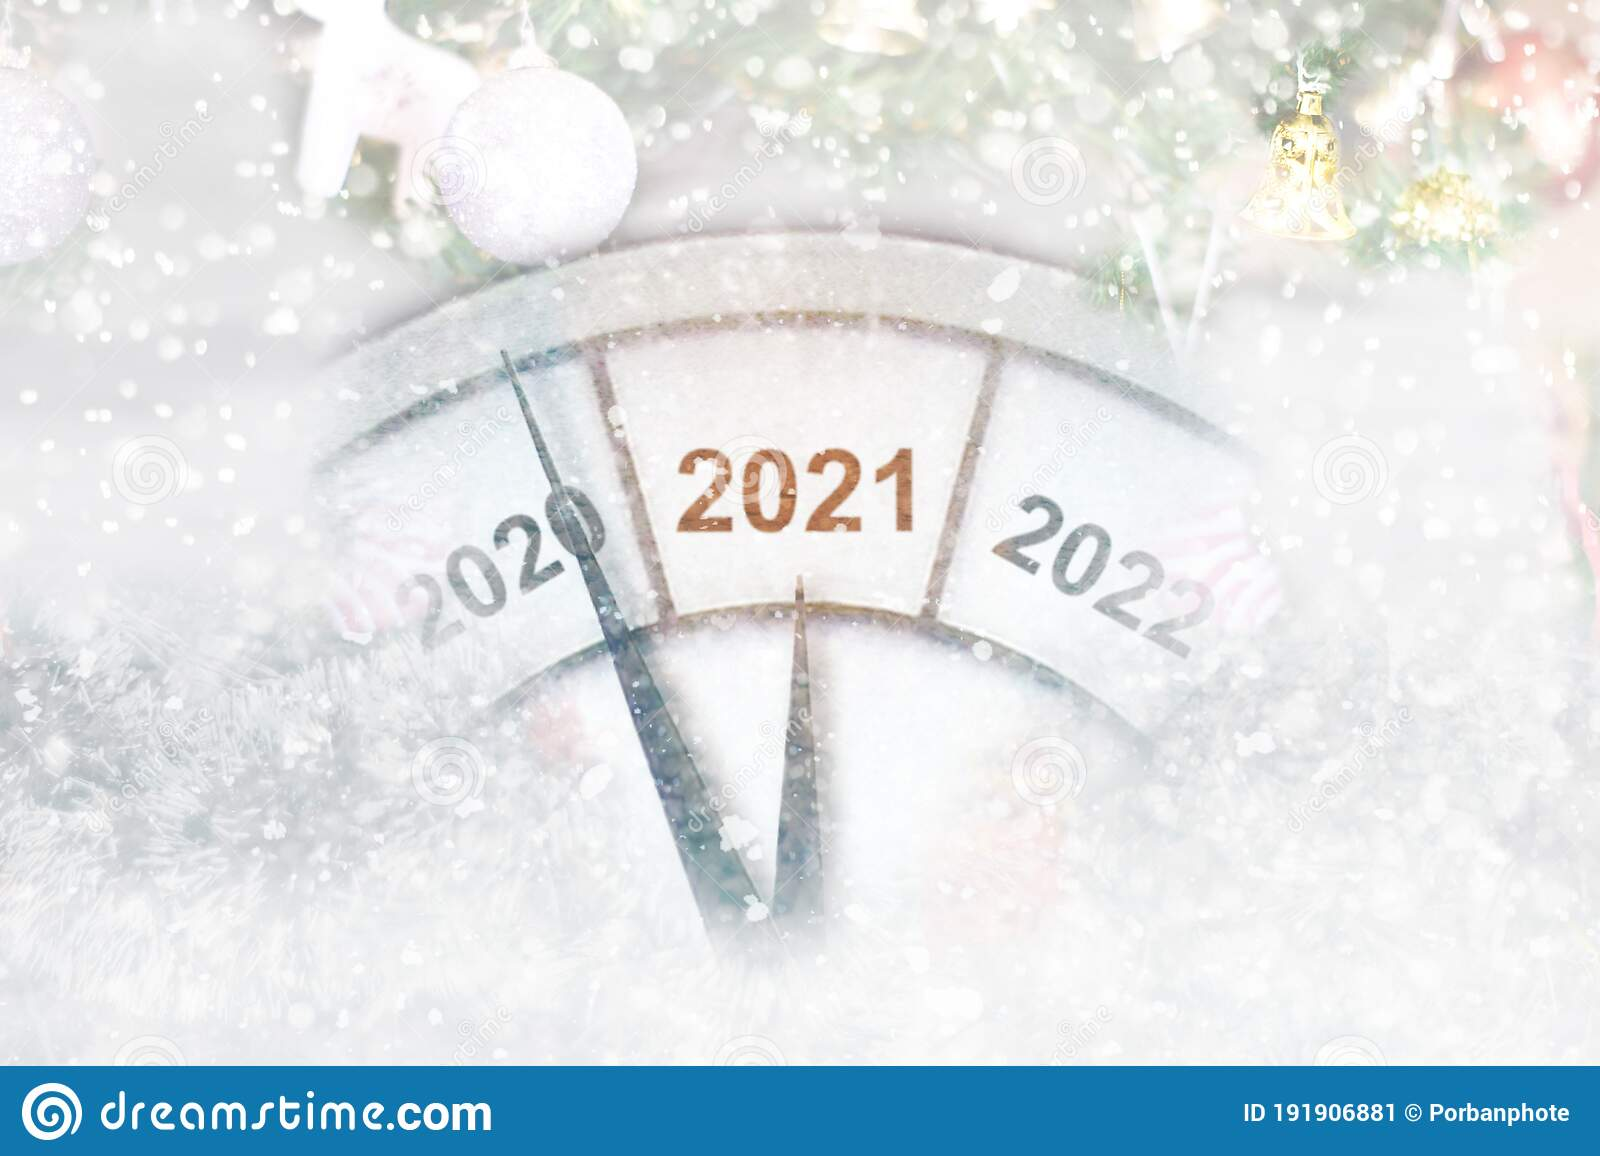 countdown to midnight clock of holiday counting last moments before christmas or new year 2021 stock illustration illustration of counting clock 191906881 dreamstime com